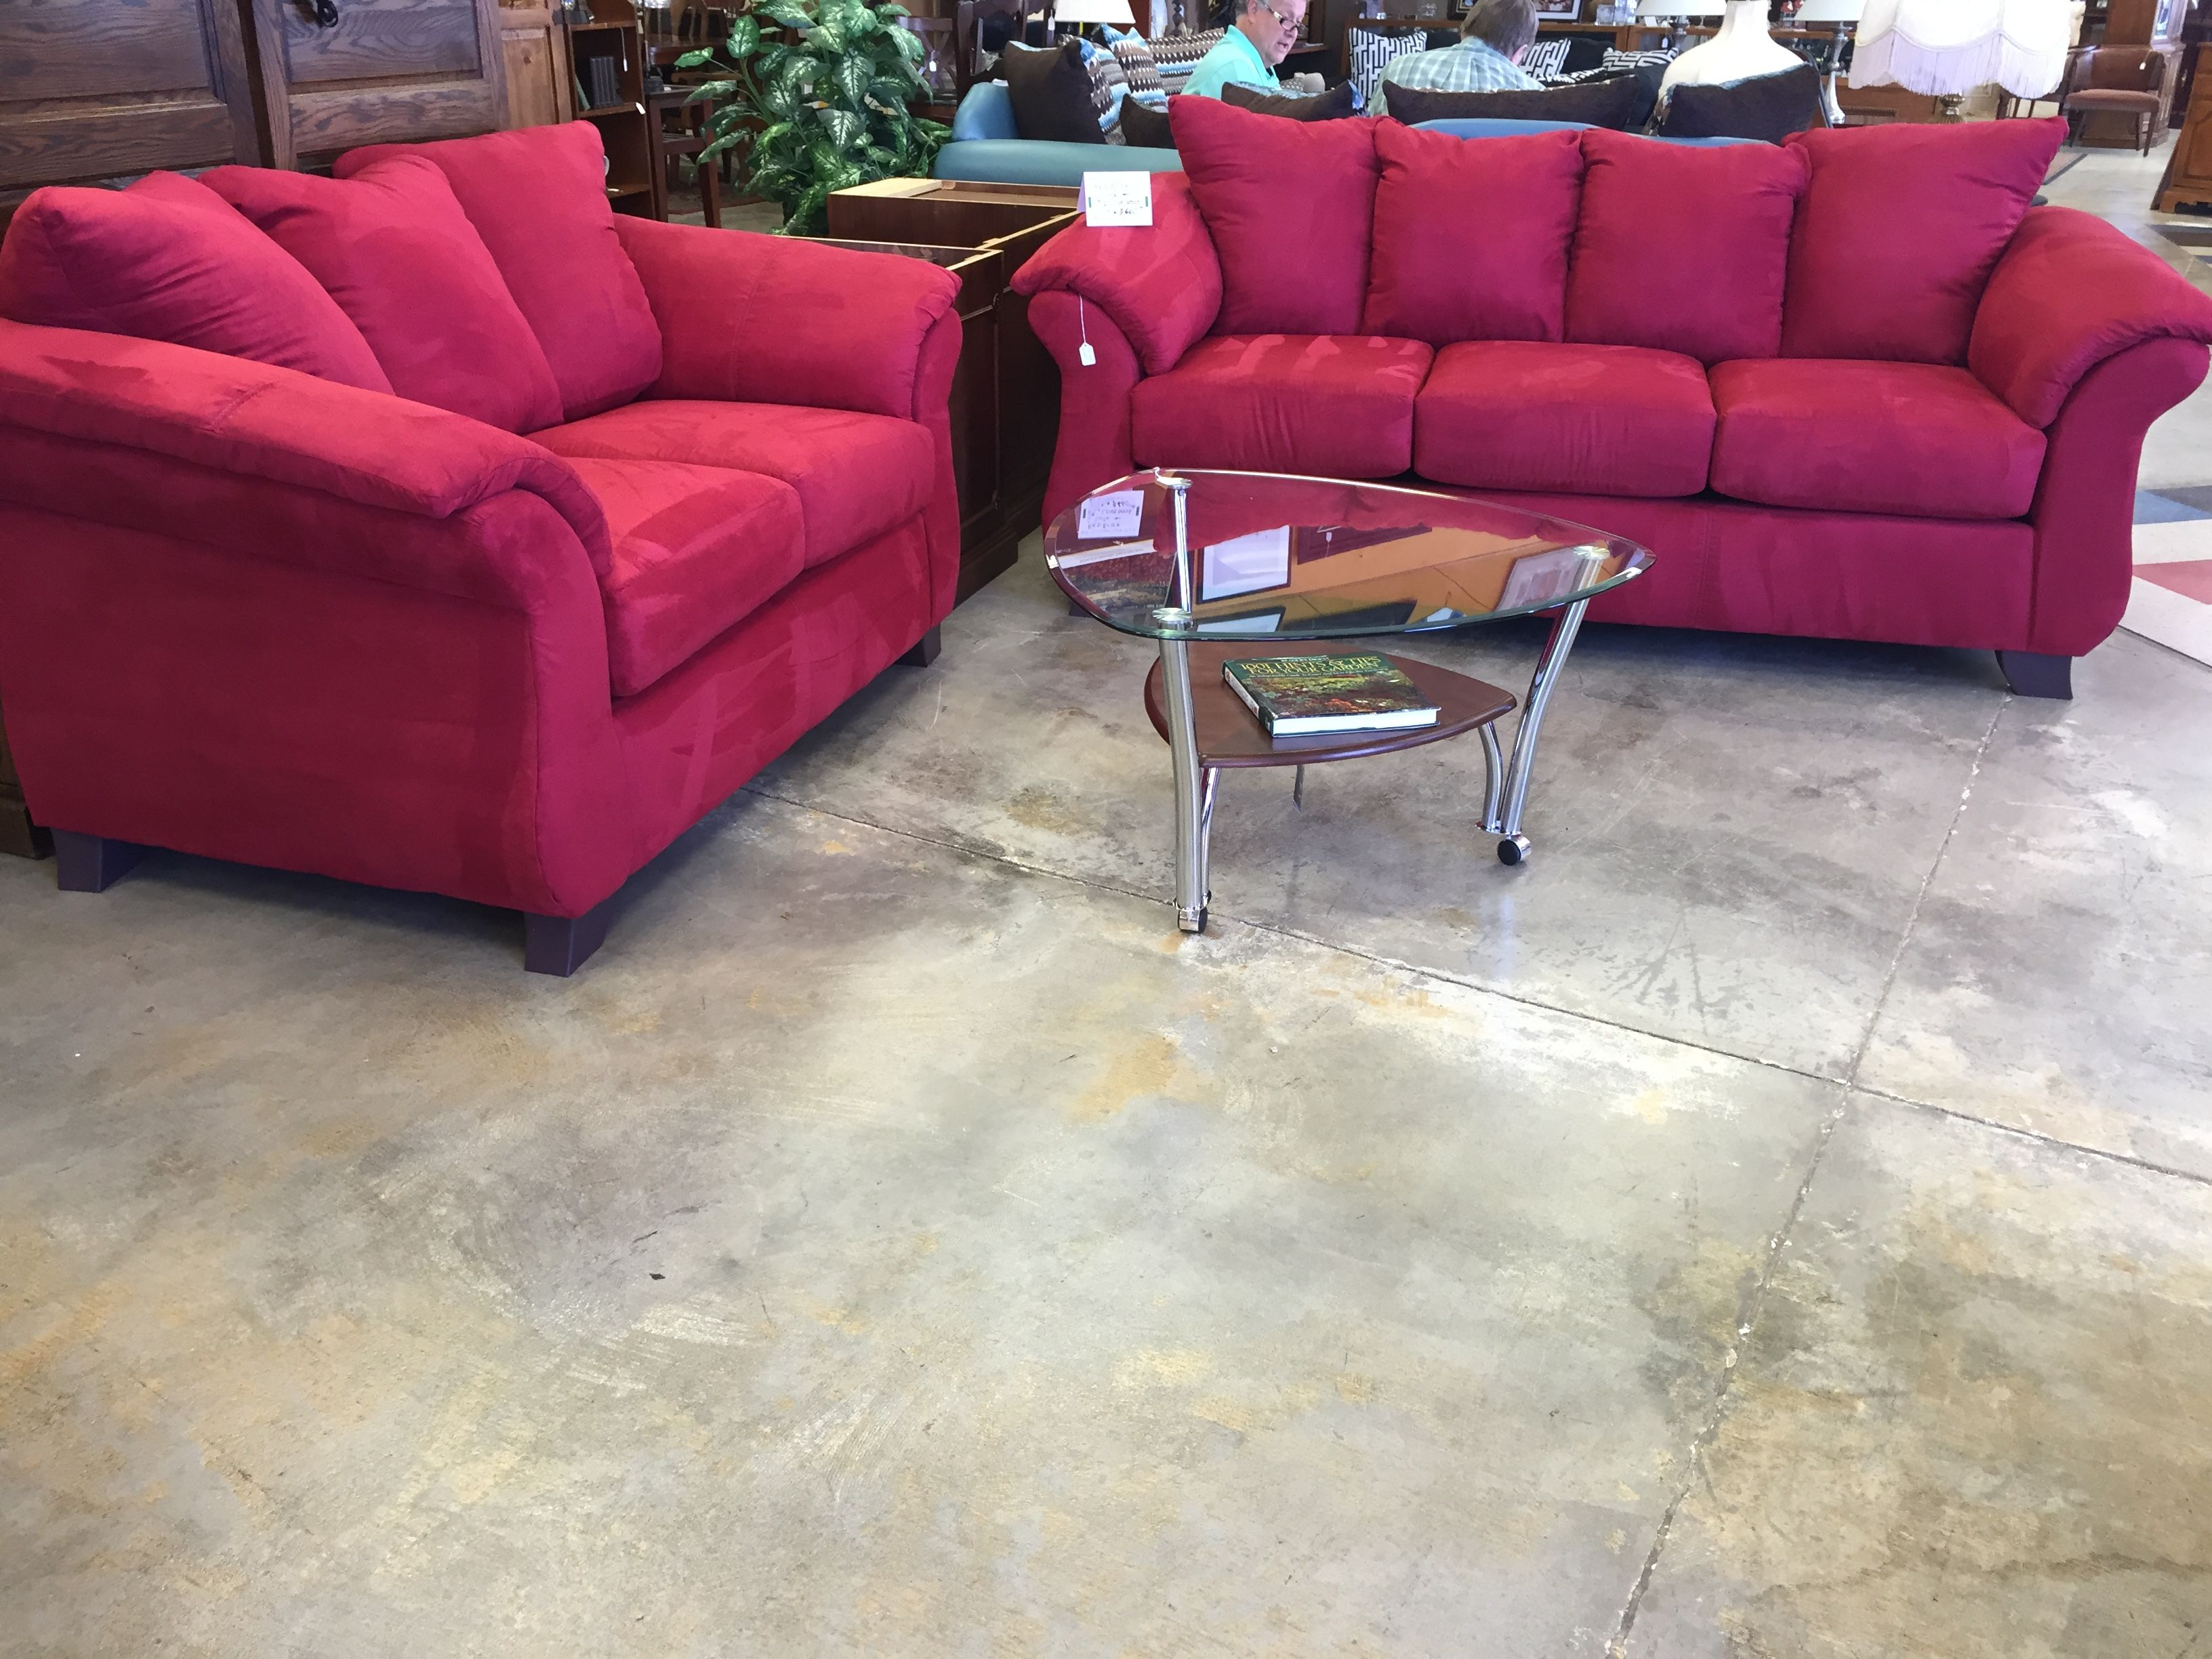 Red Brick Sofa And Loveseat All For Only $660.Buy Online At